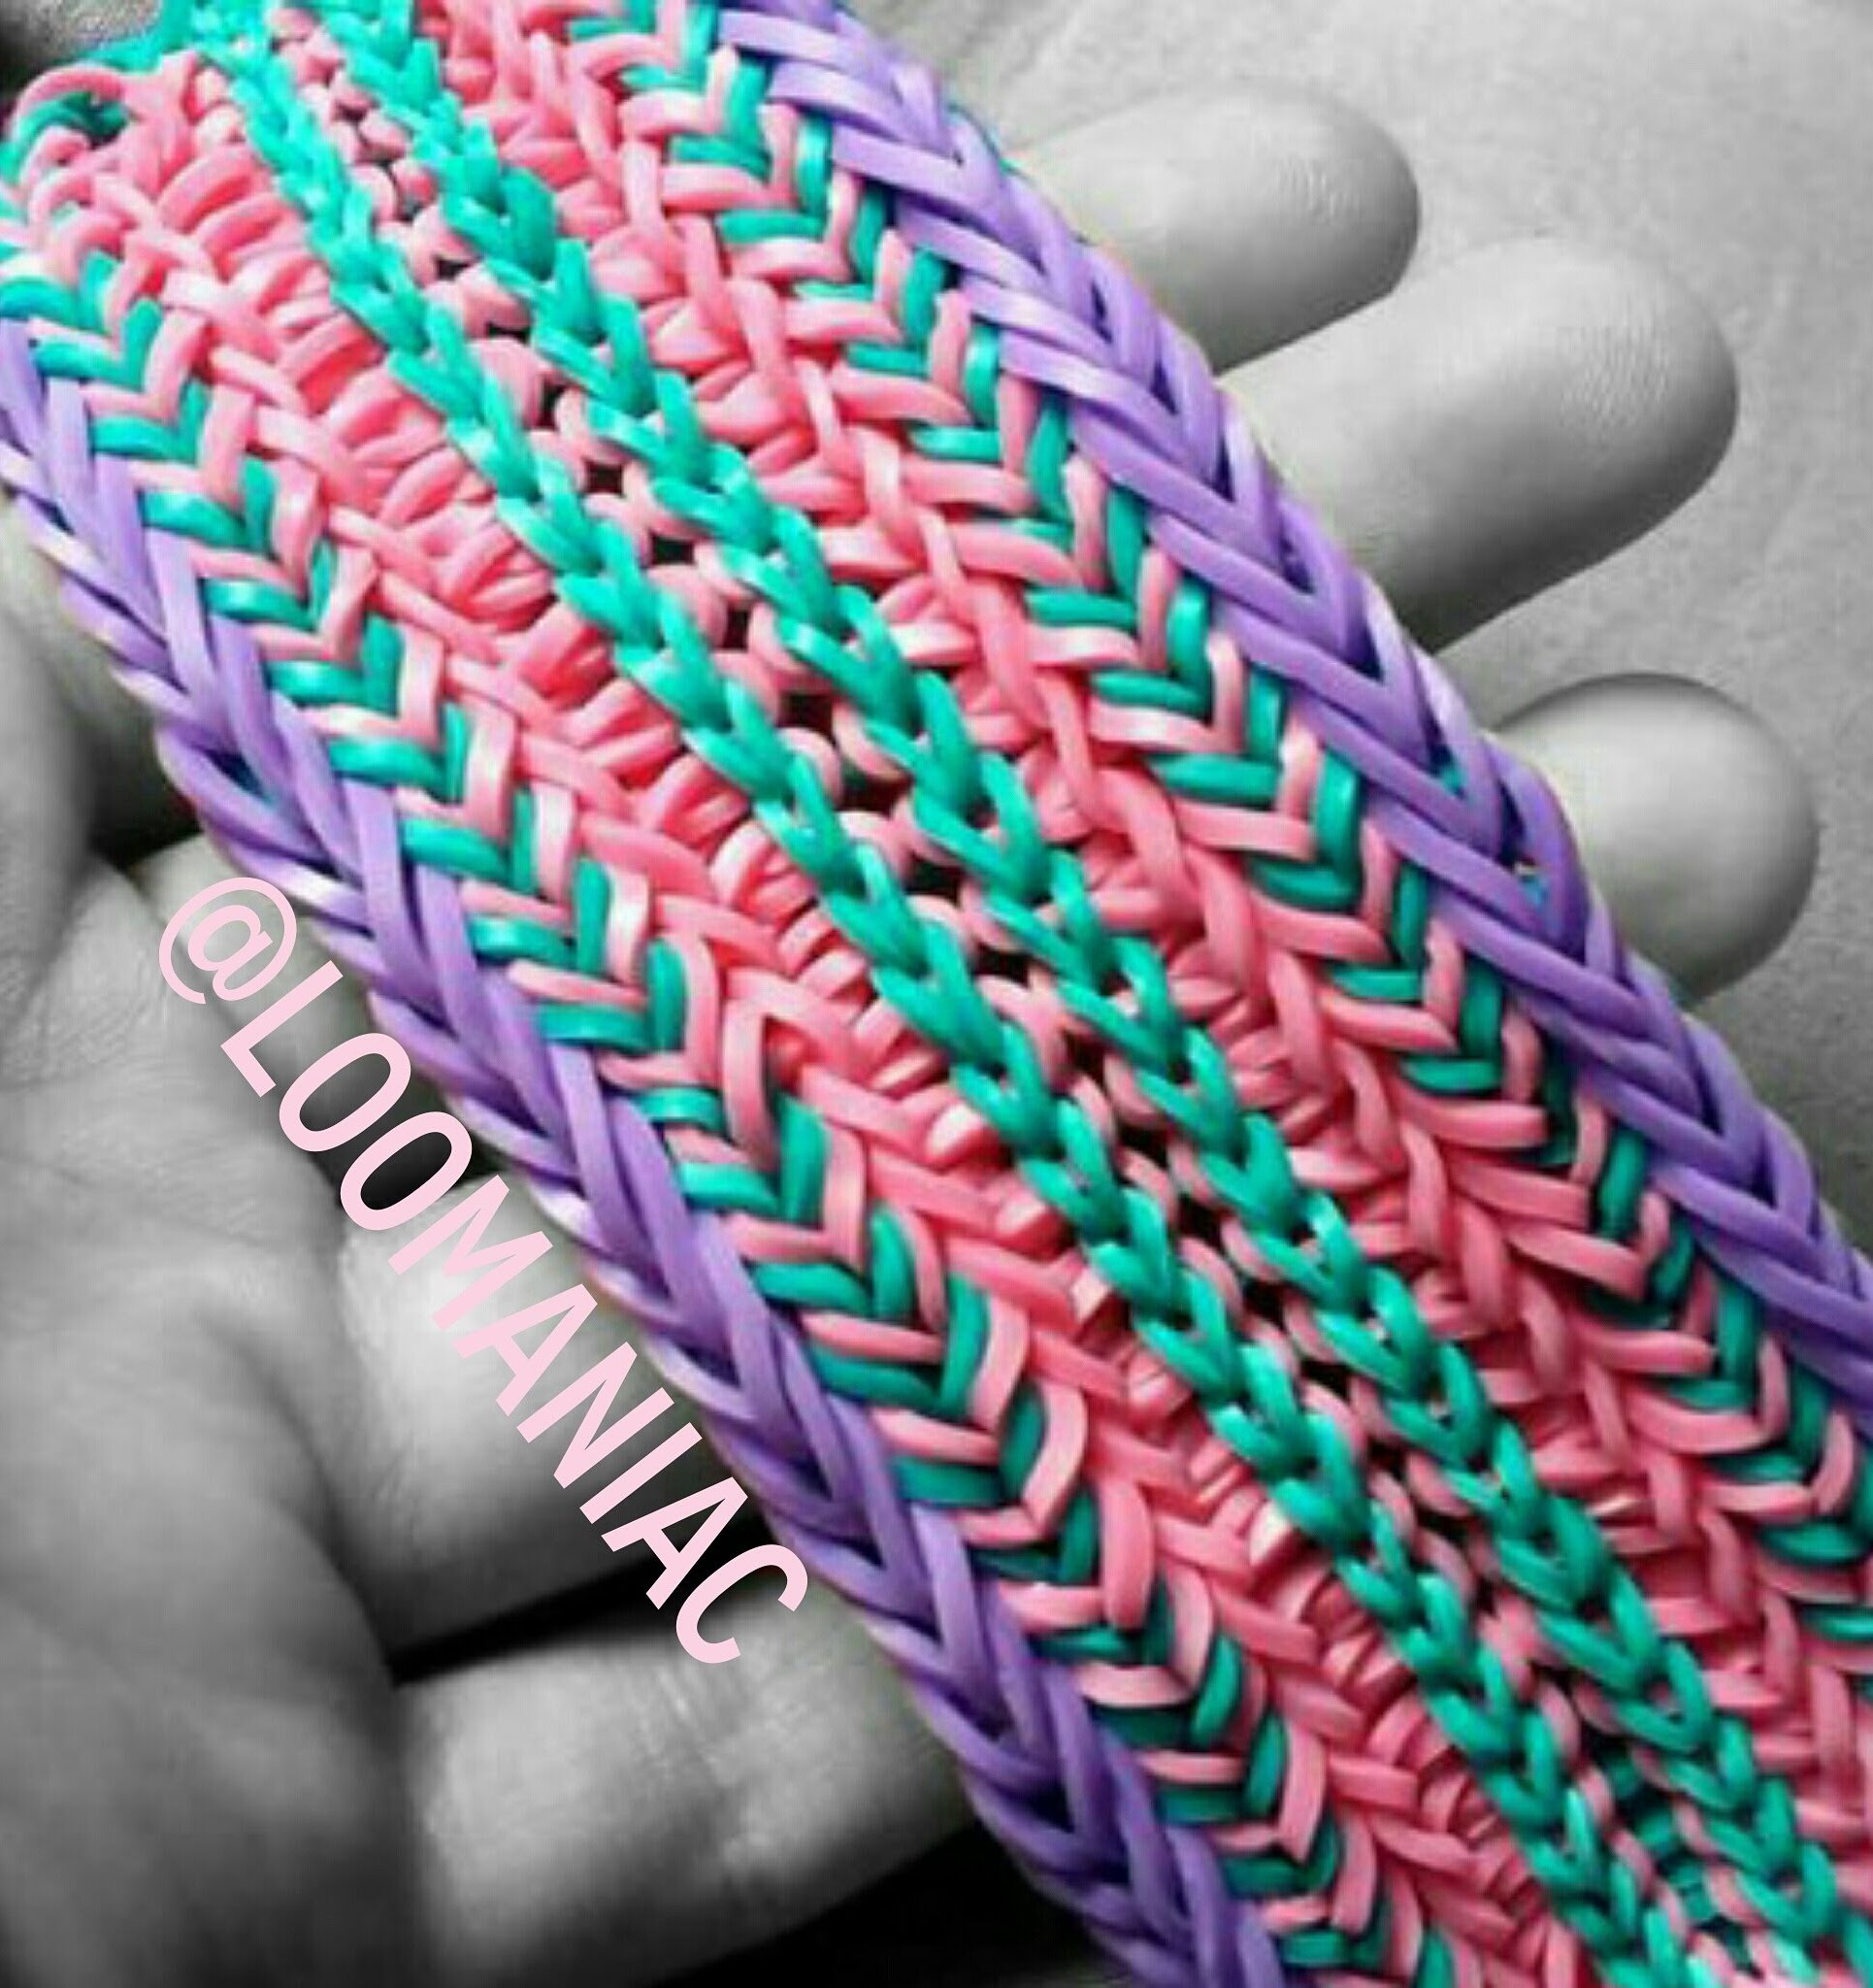 Tire Track Rainbow Loom Bracelets Tutorial